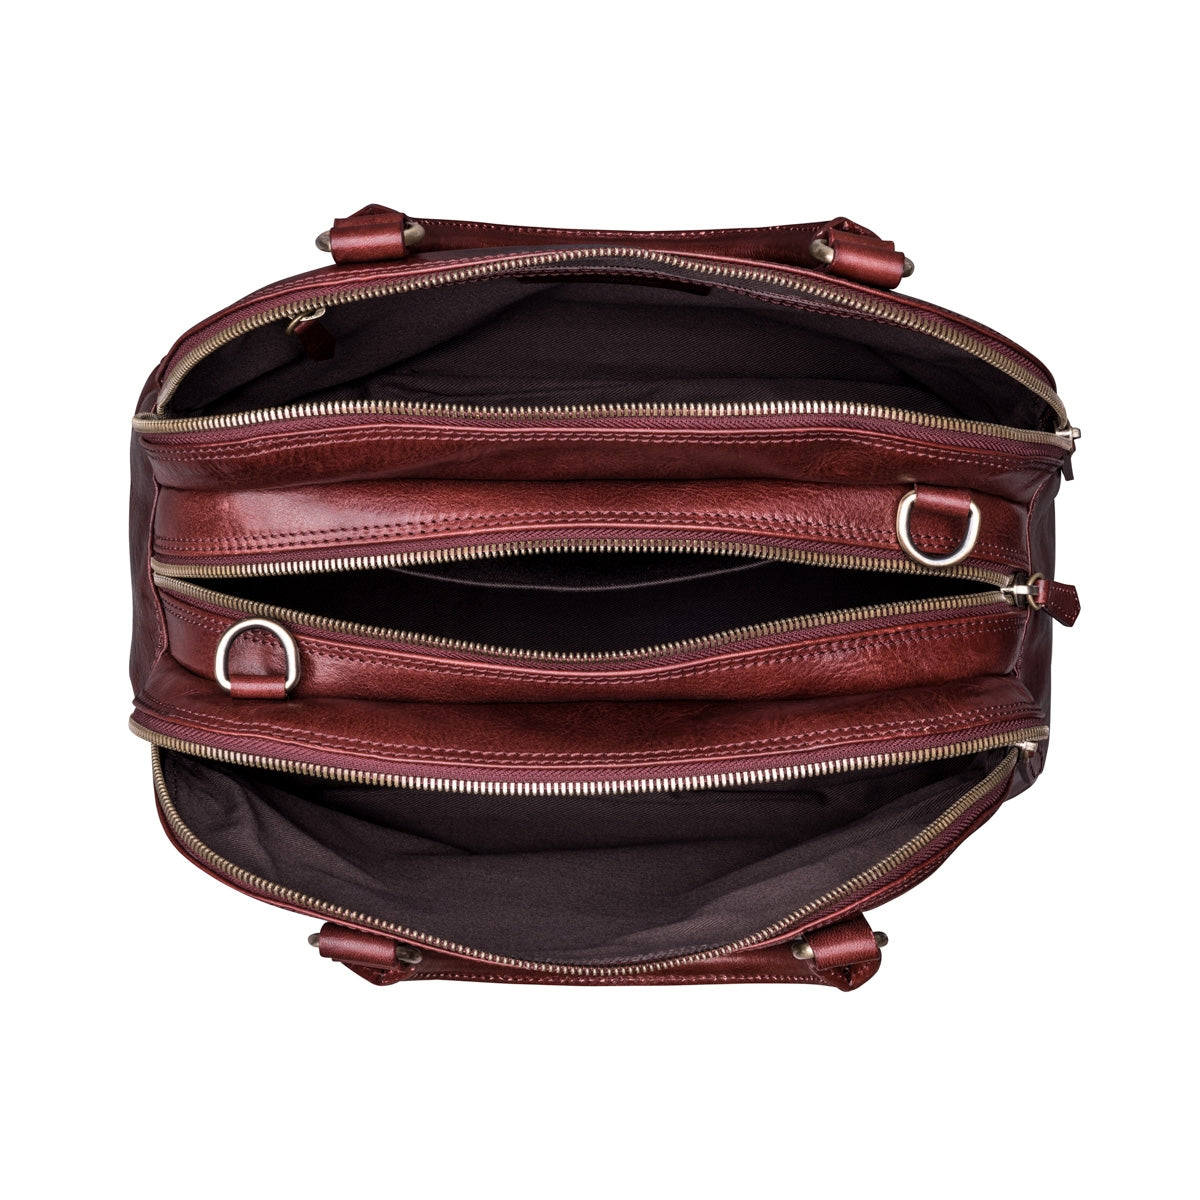 Image 5 of the 'LilianaS' Wine Leather Bowling Bag Handbag